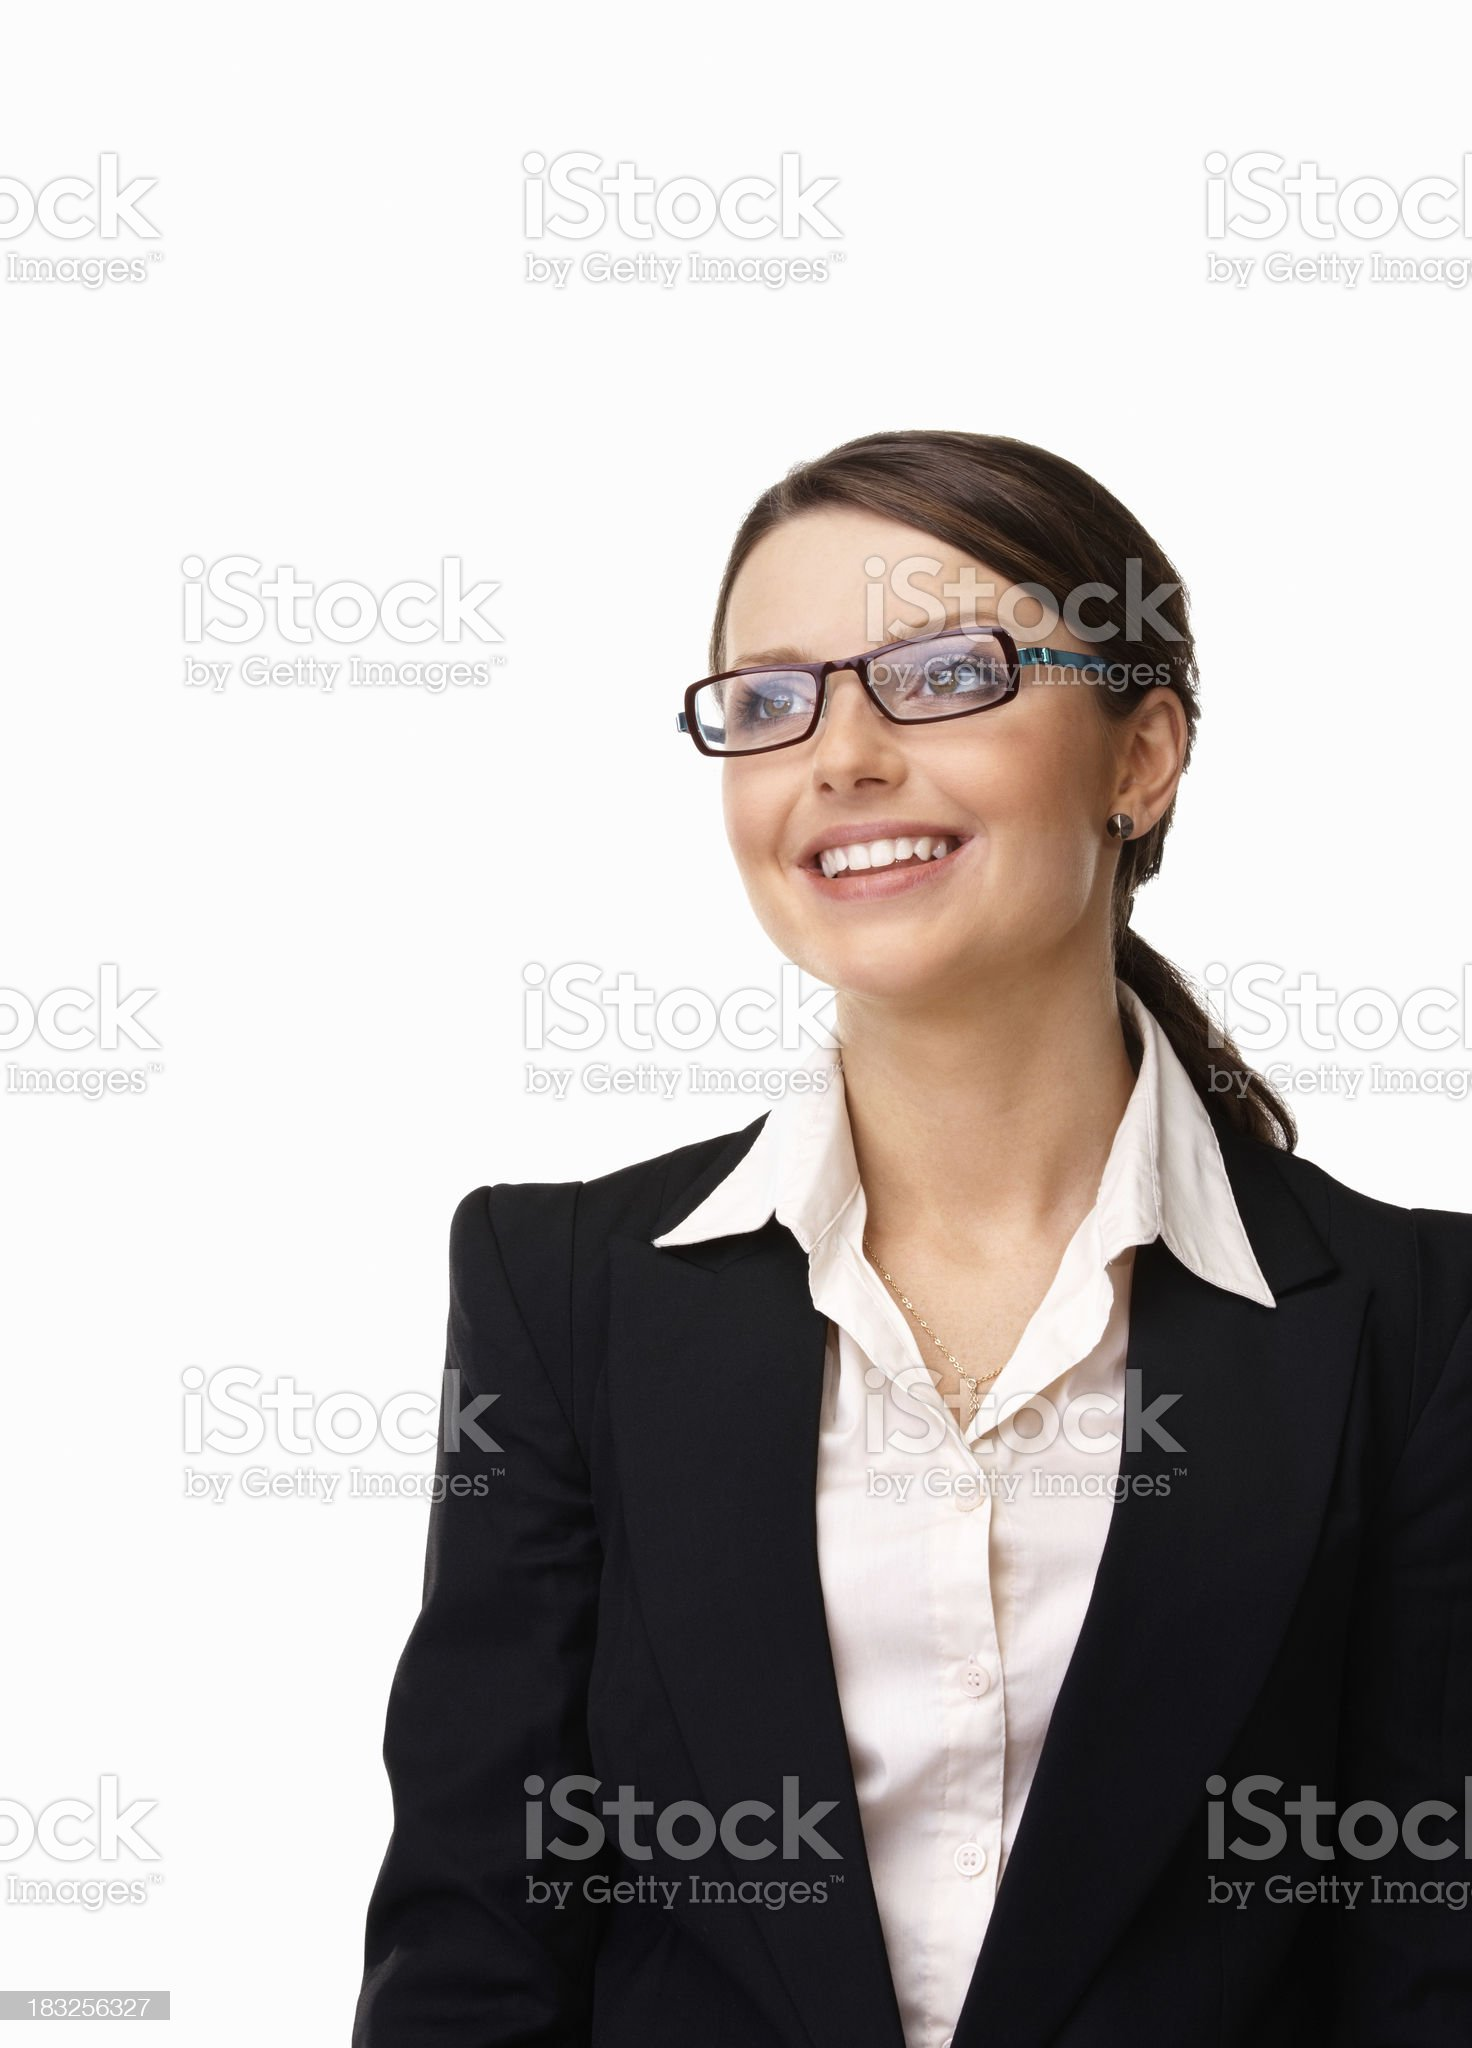 Beautiful young business woman smiling against white background royalty-free stock photo